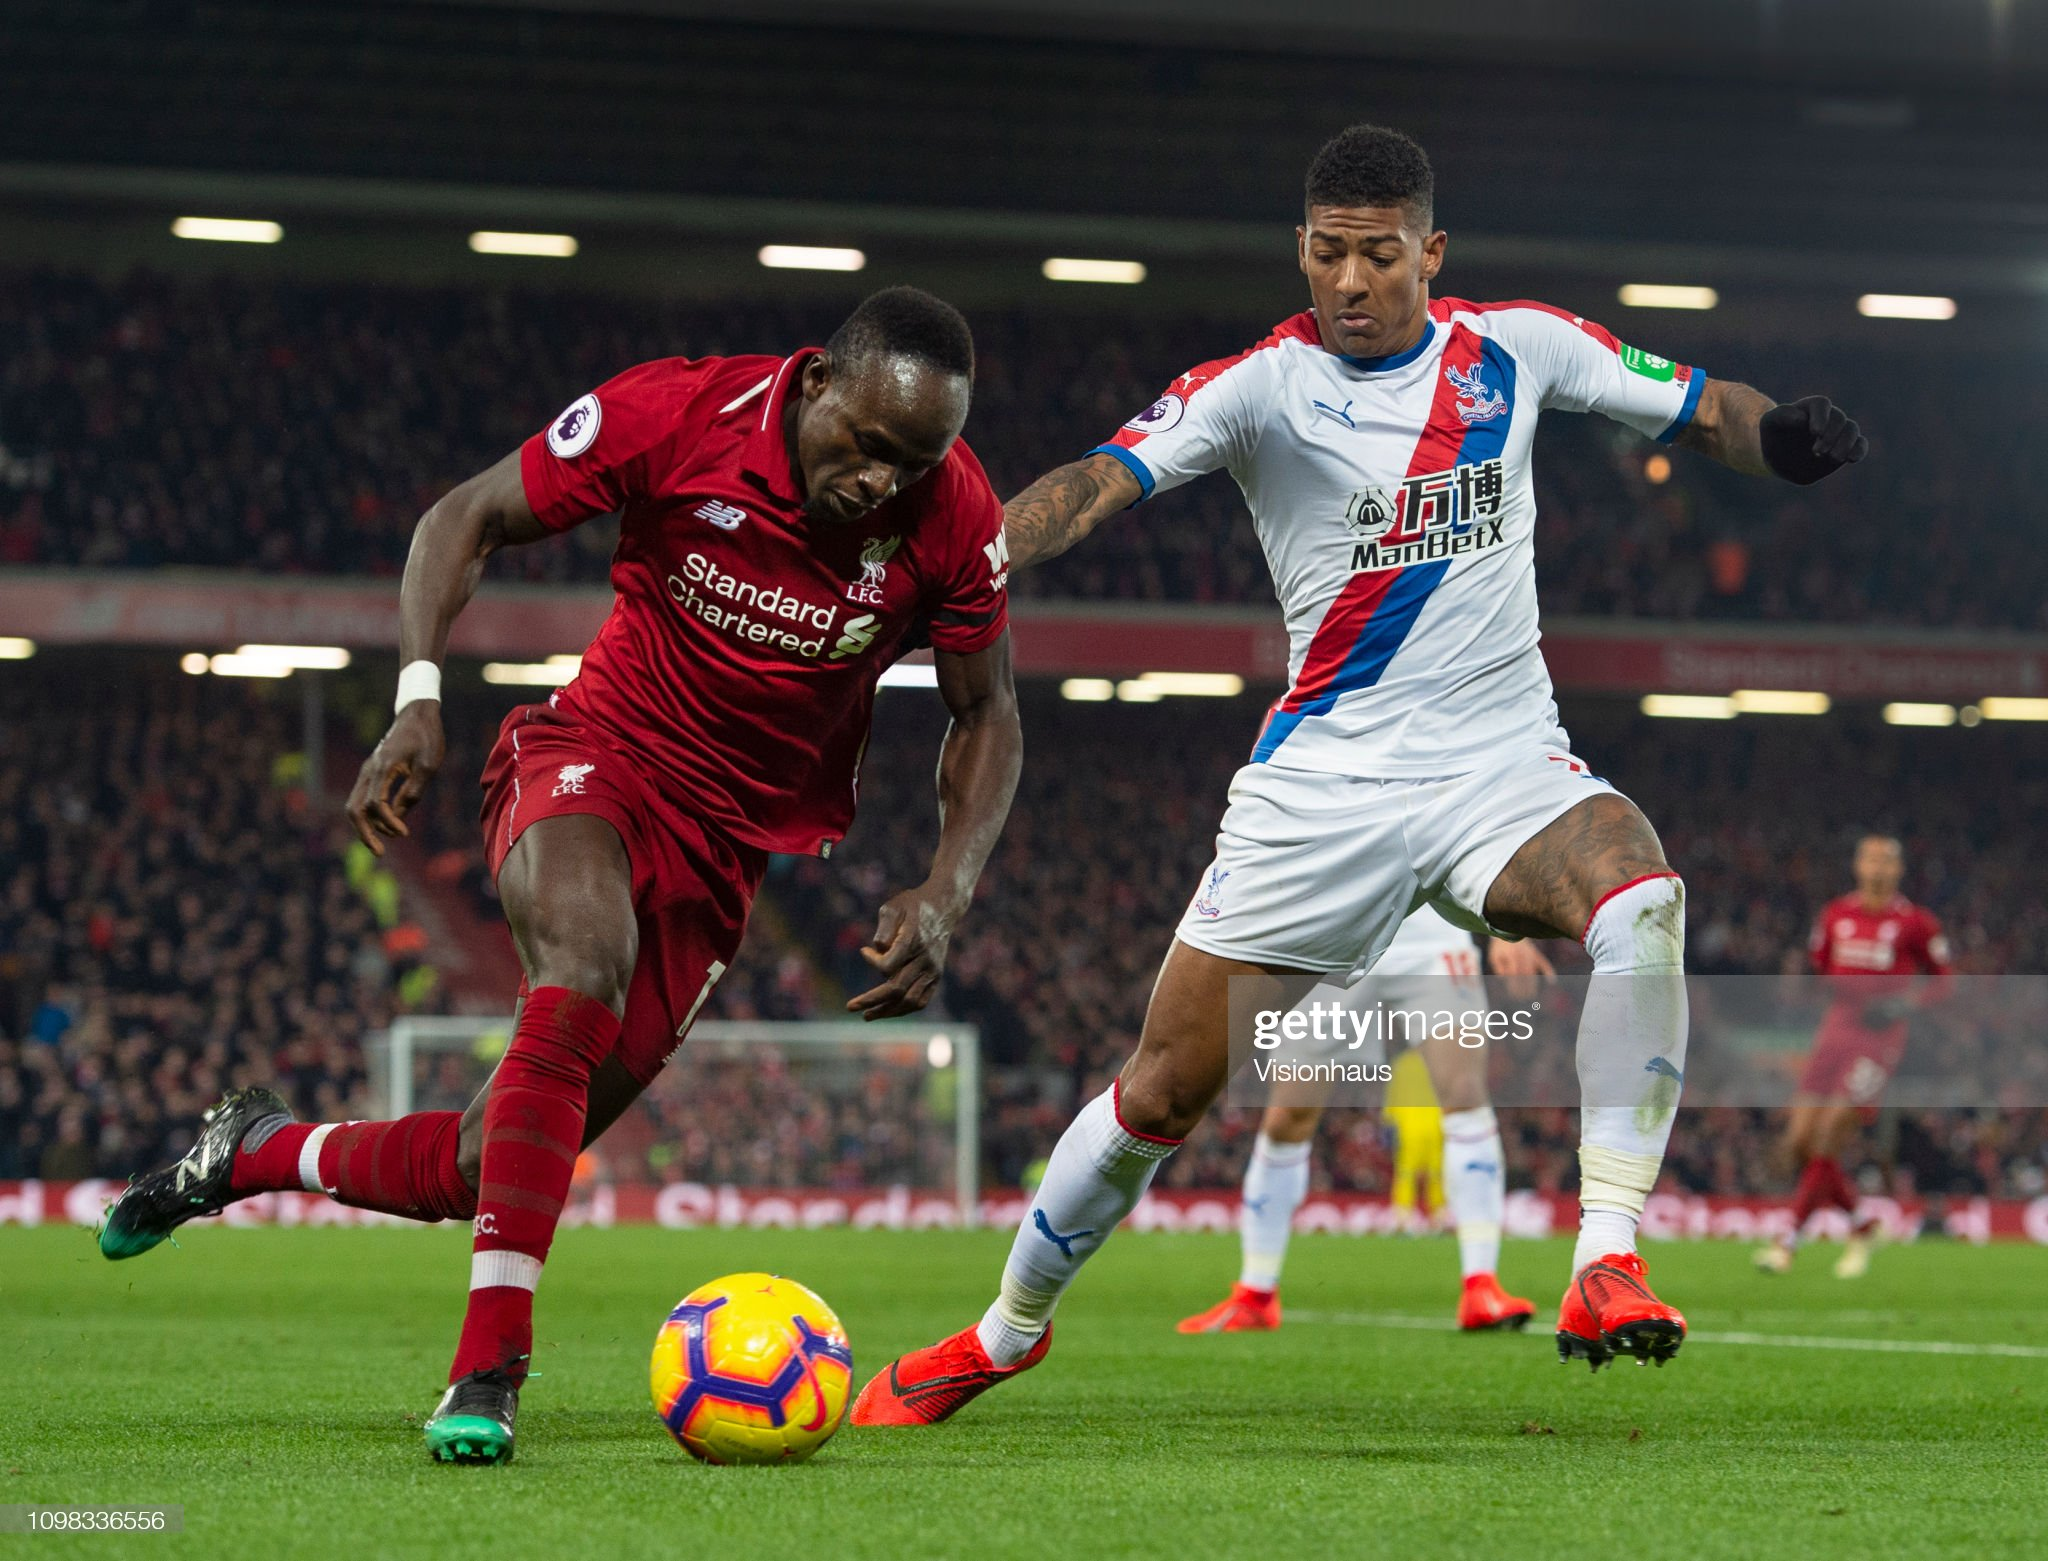 Crystal Palace v Liverpool preview, prediction and odds